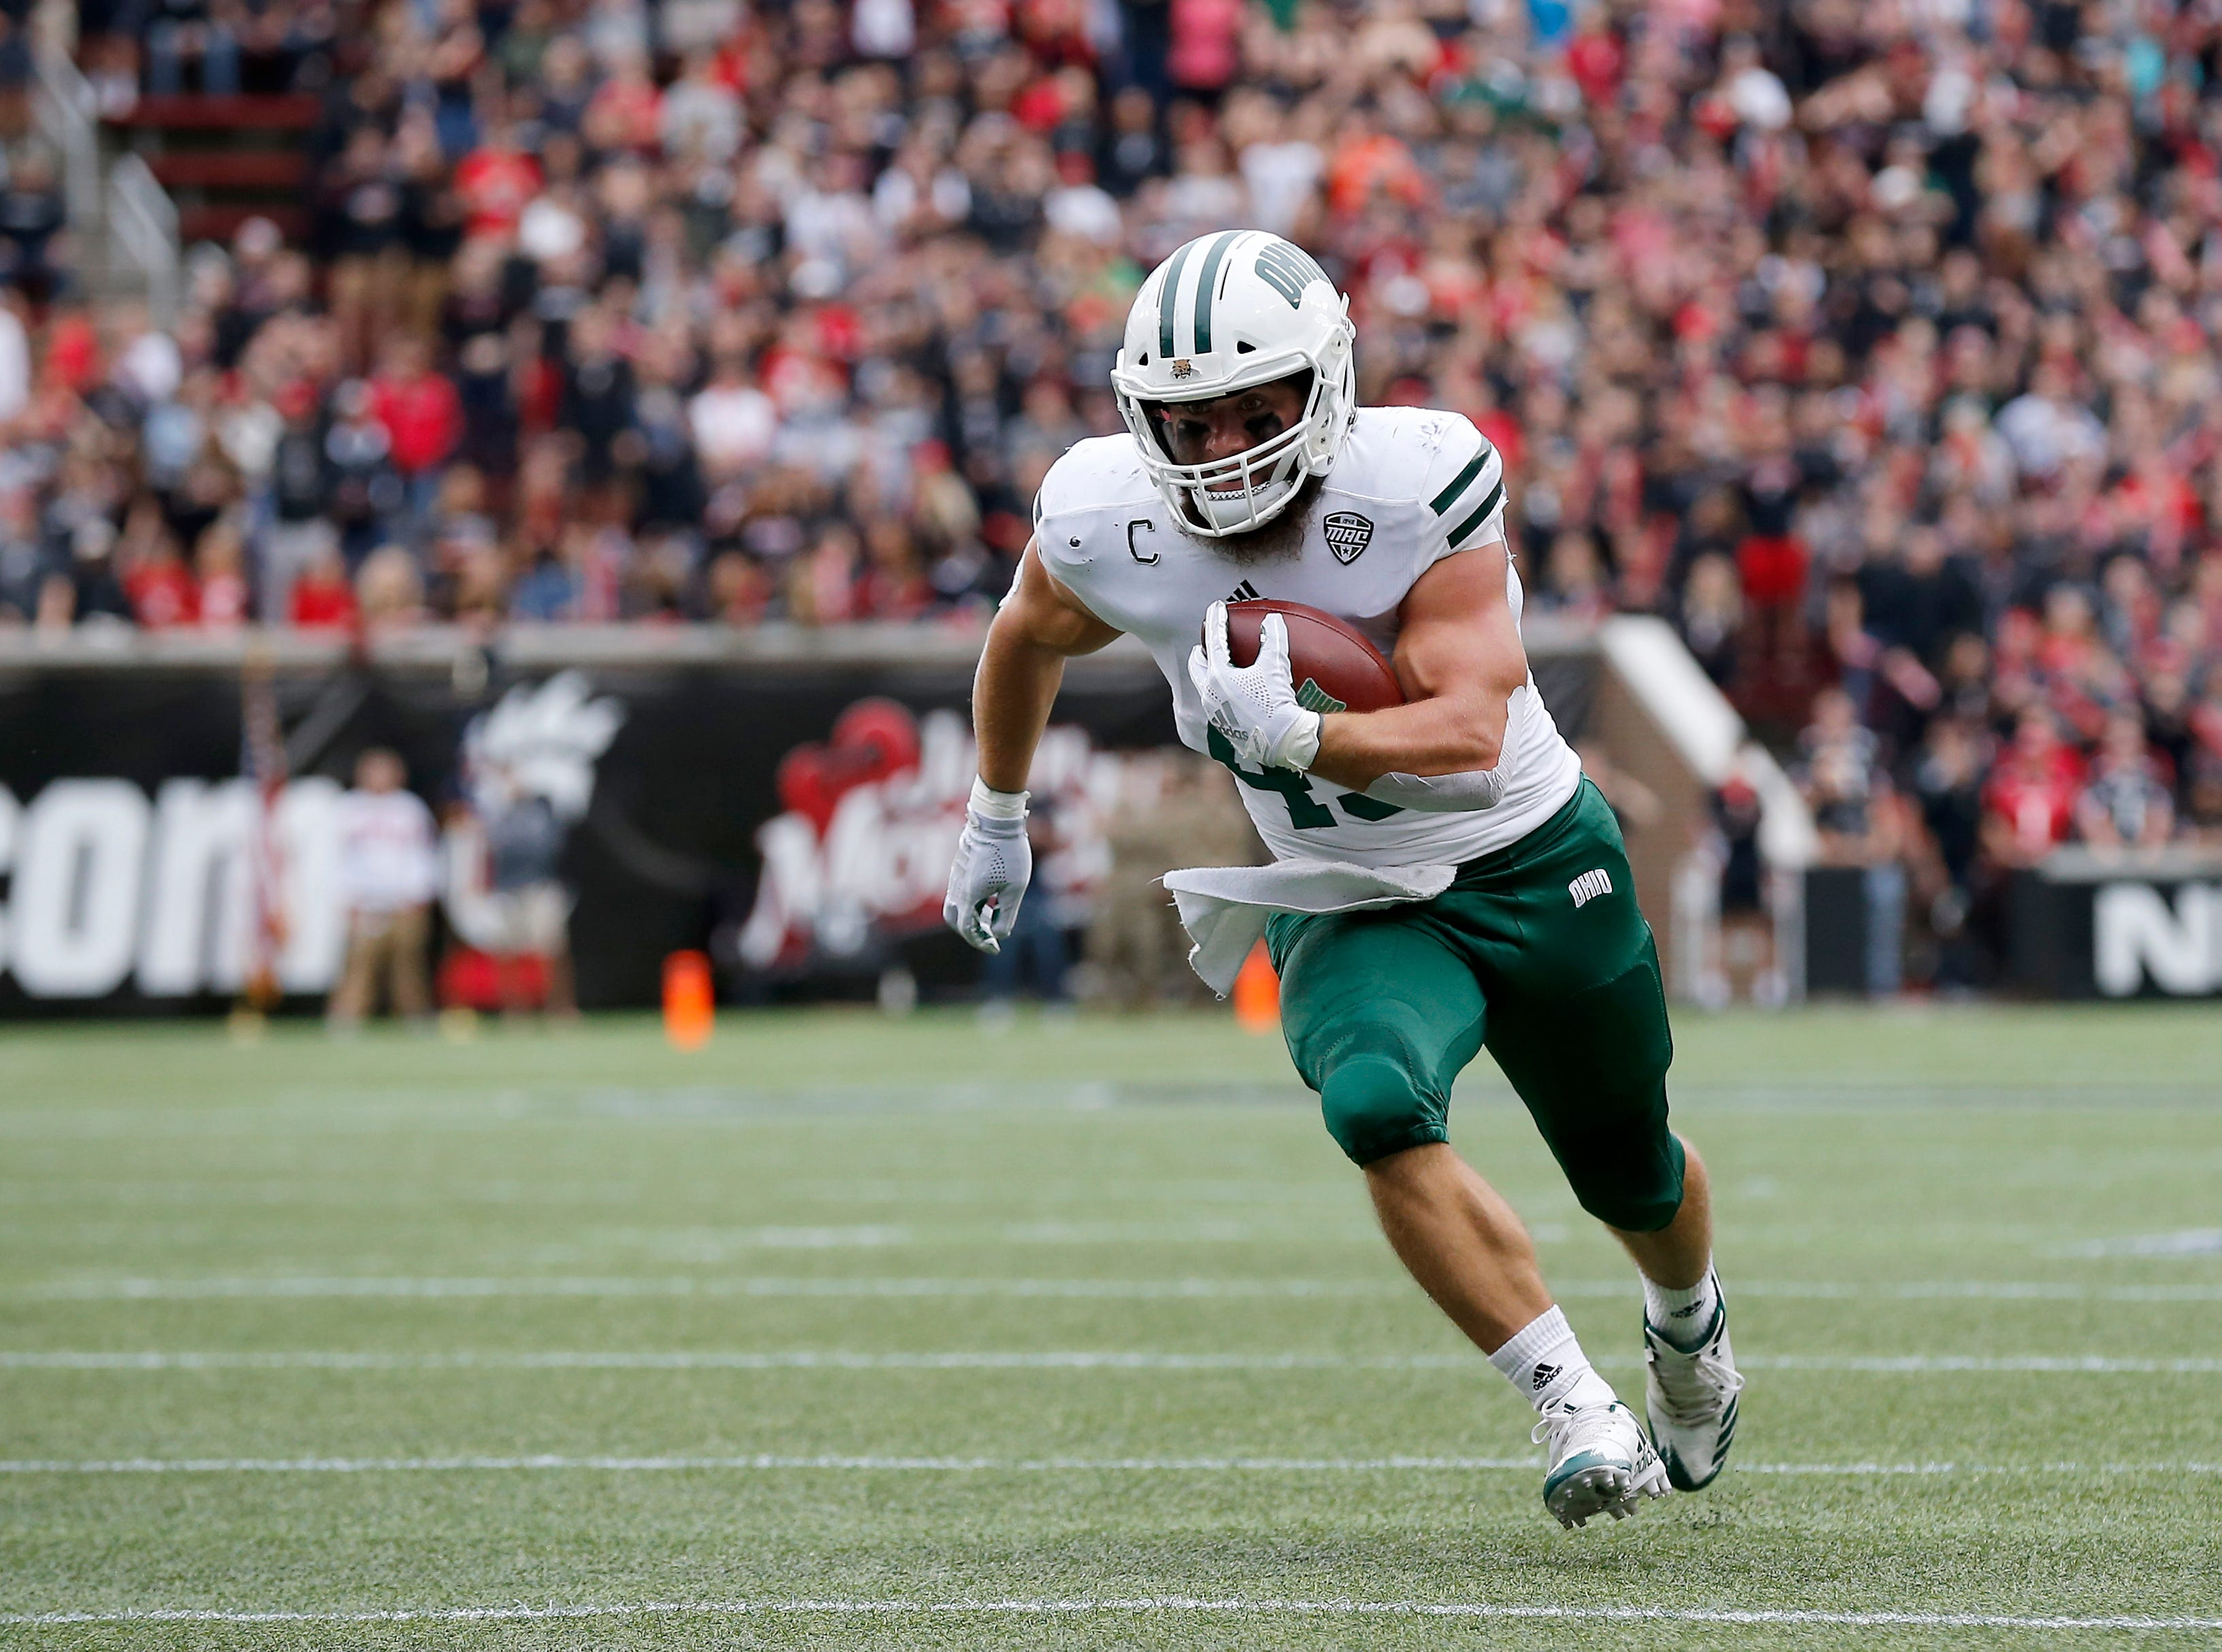 Ohio Bobcats quarterback Nathan Rourke (12) runs the ball on a QB keeper in the first quarter of the NCAA football game between the Cincinnati Bearcats and the Ohio Bobcats at Nippert Stadium on the University of Cincinnati campus in Cincinnati on Saturday, Sept. 22, 2018. The Bobcats led 24-7 at halftime.